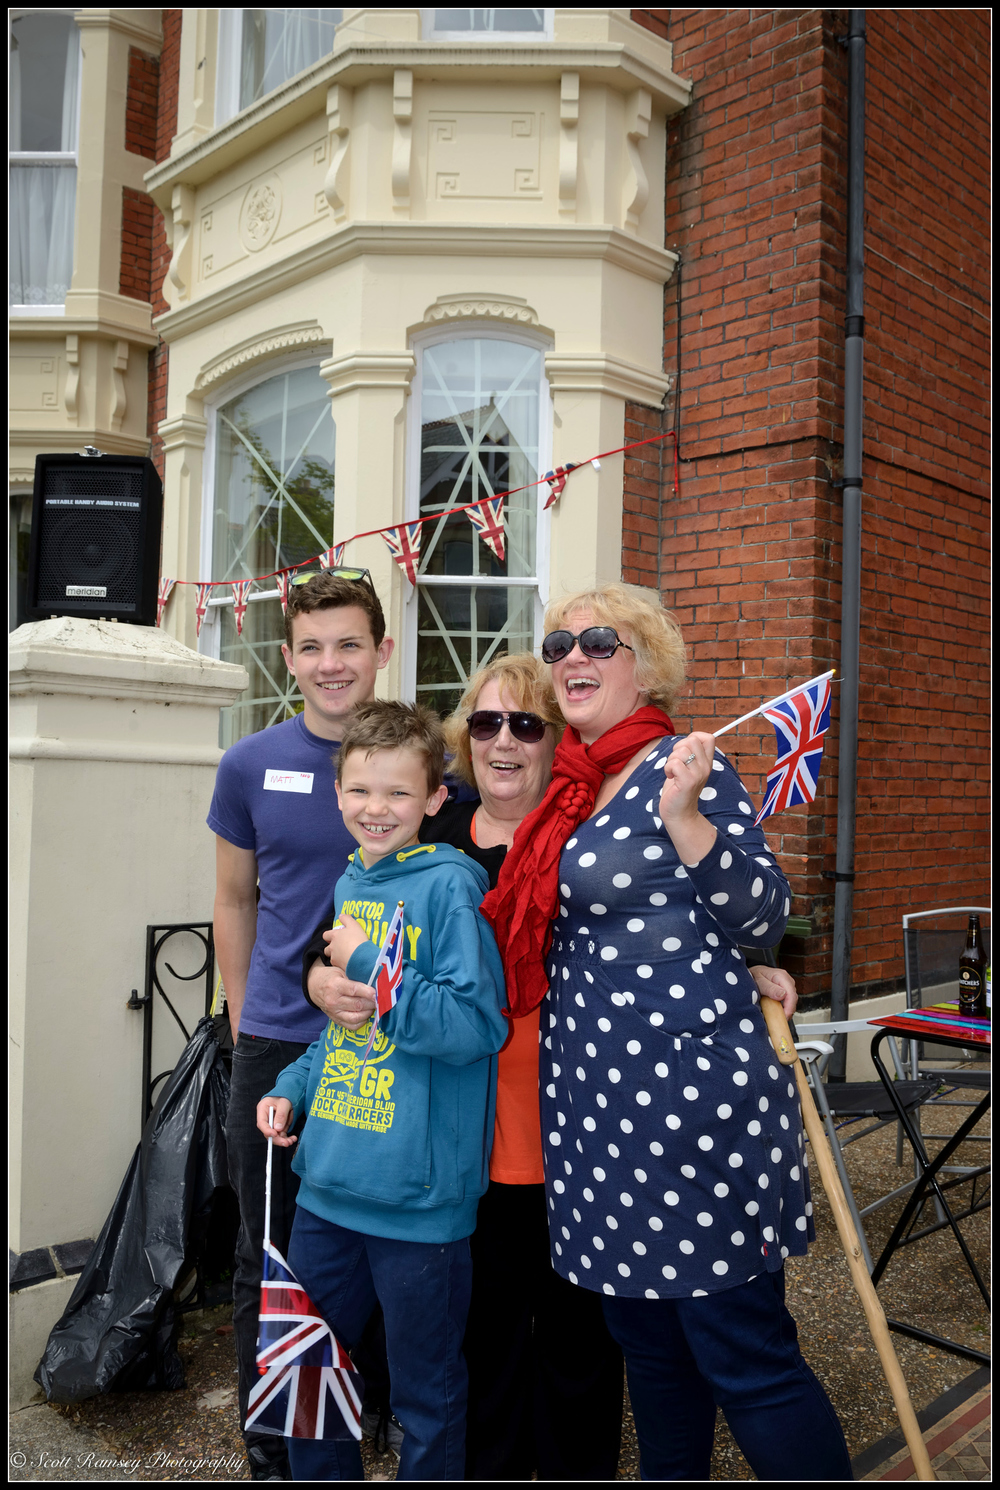 The Nicholson family stand outside their house enjoying the  VE Day street party   in Southsea, Portsmouth.   © Scott Ramsey Photography.